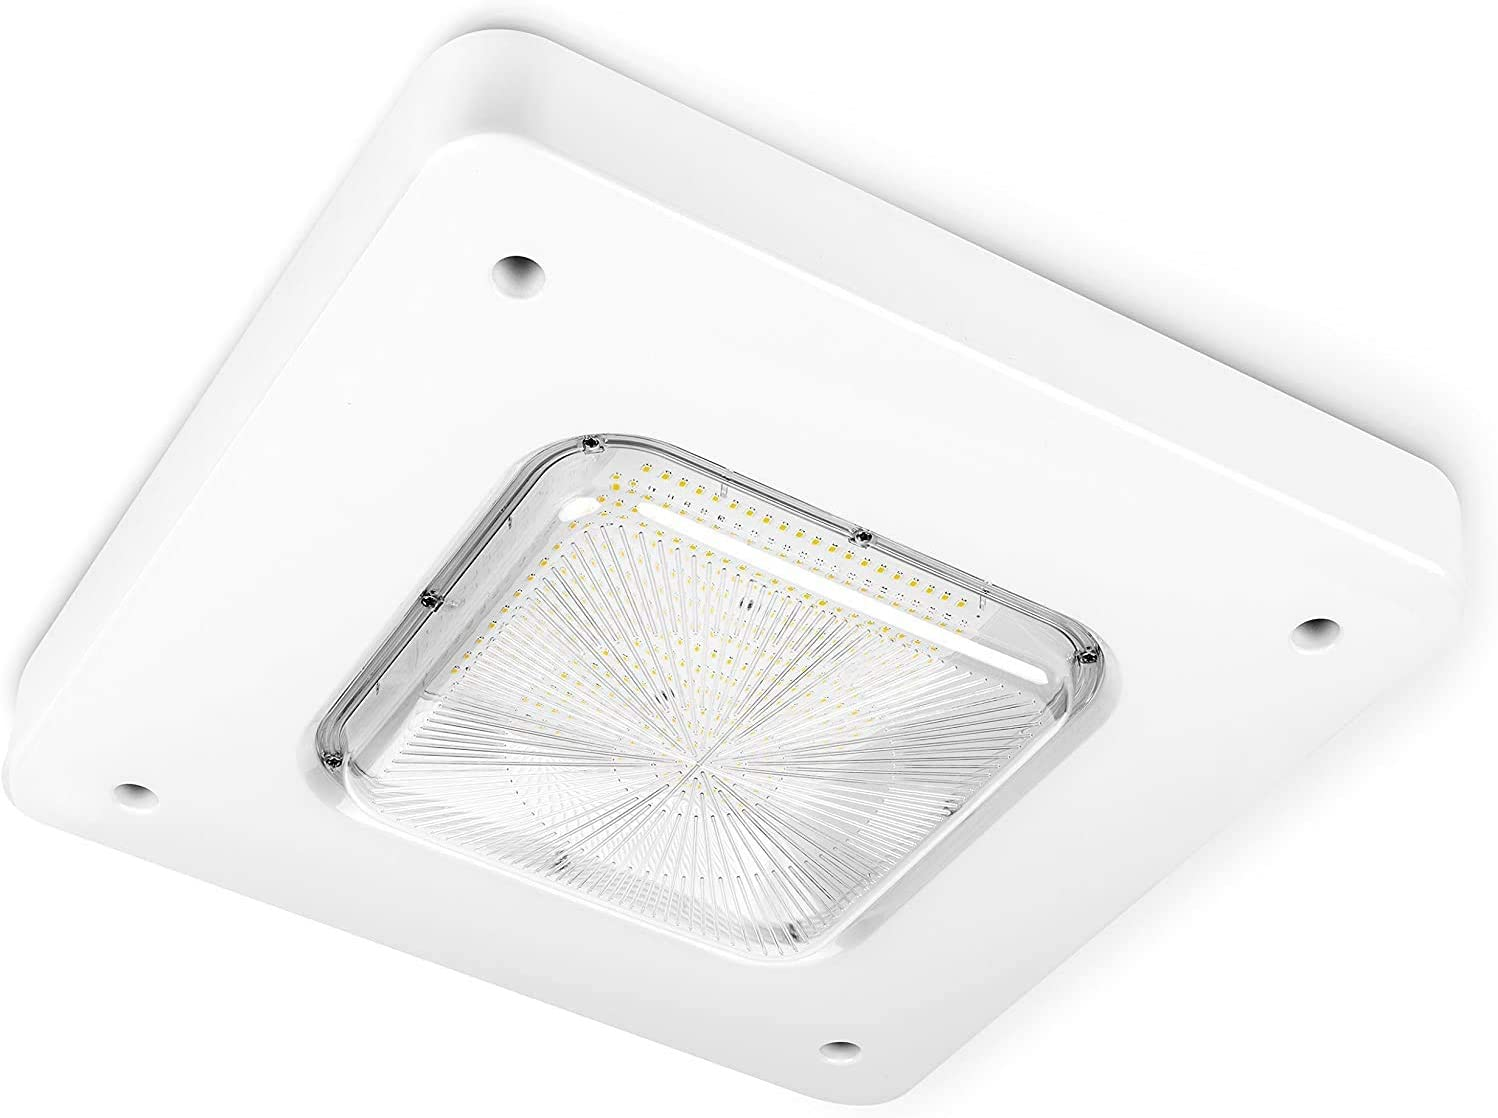 TechnoLED LED Gas Station CANOPY LIGHT, 100Watts 5000K comes with Aluminum Heat Sink to ensure long life performance